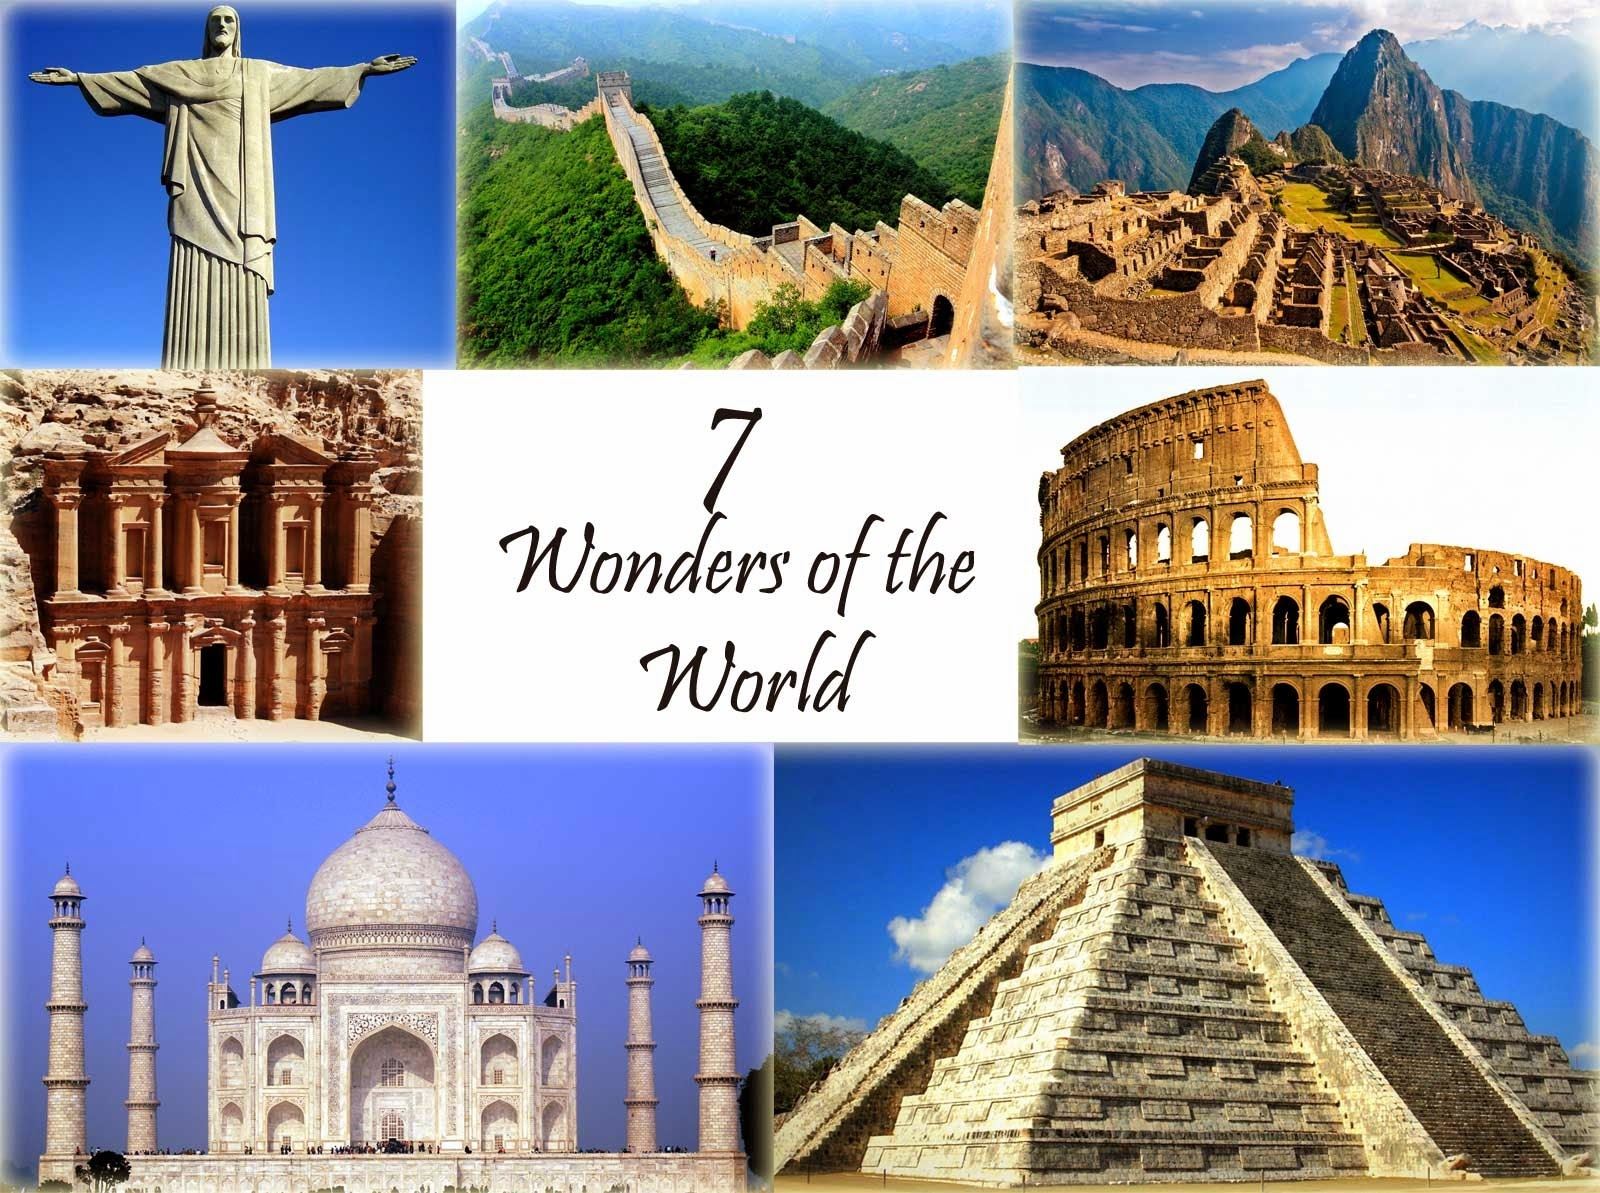 Assembly - Seven Wonders of the World